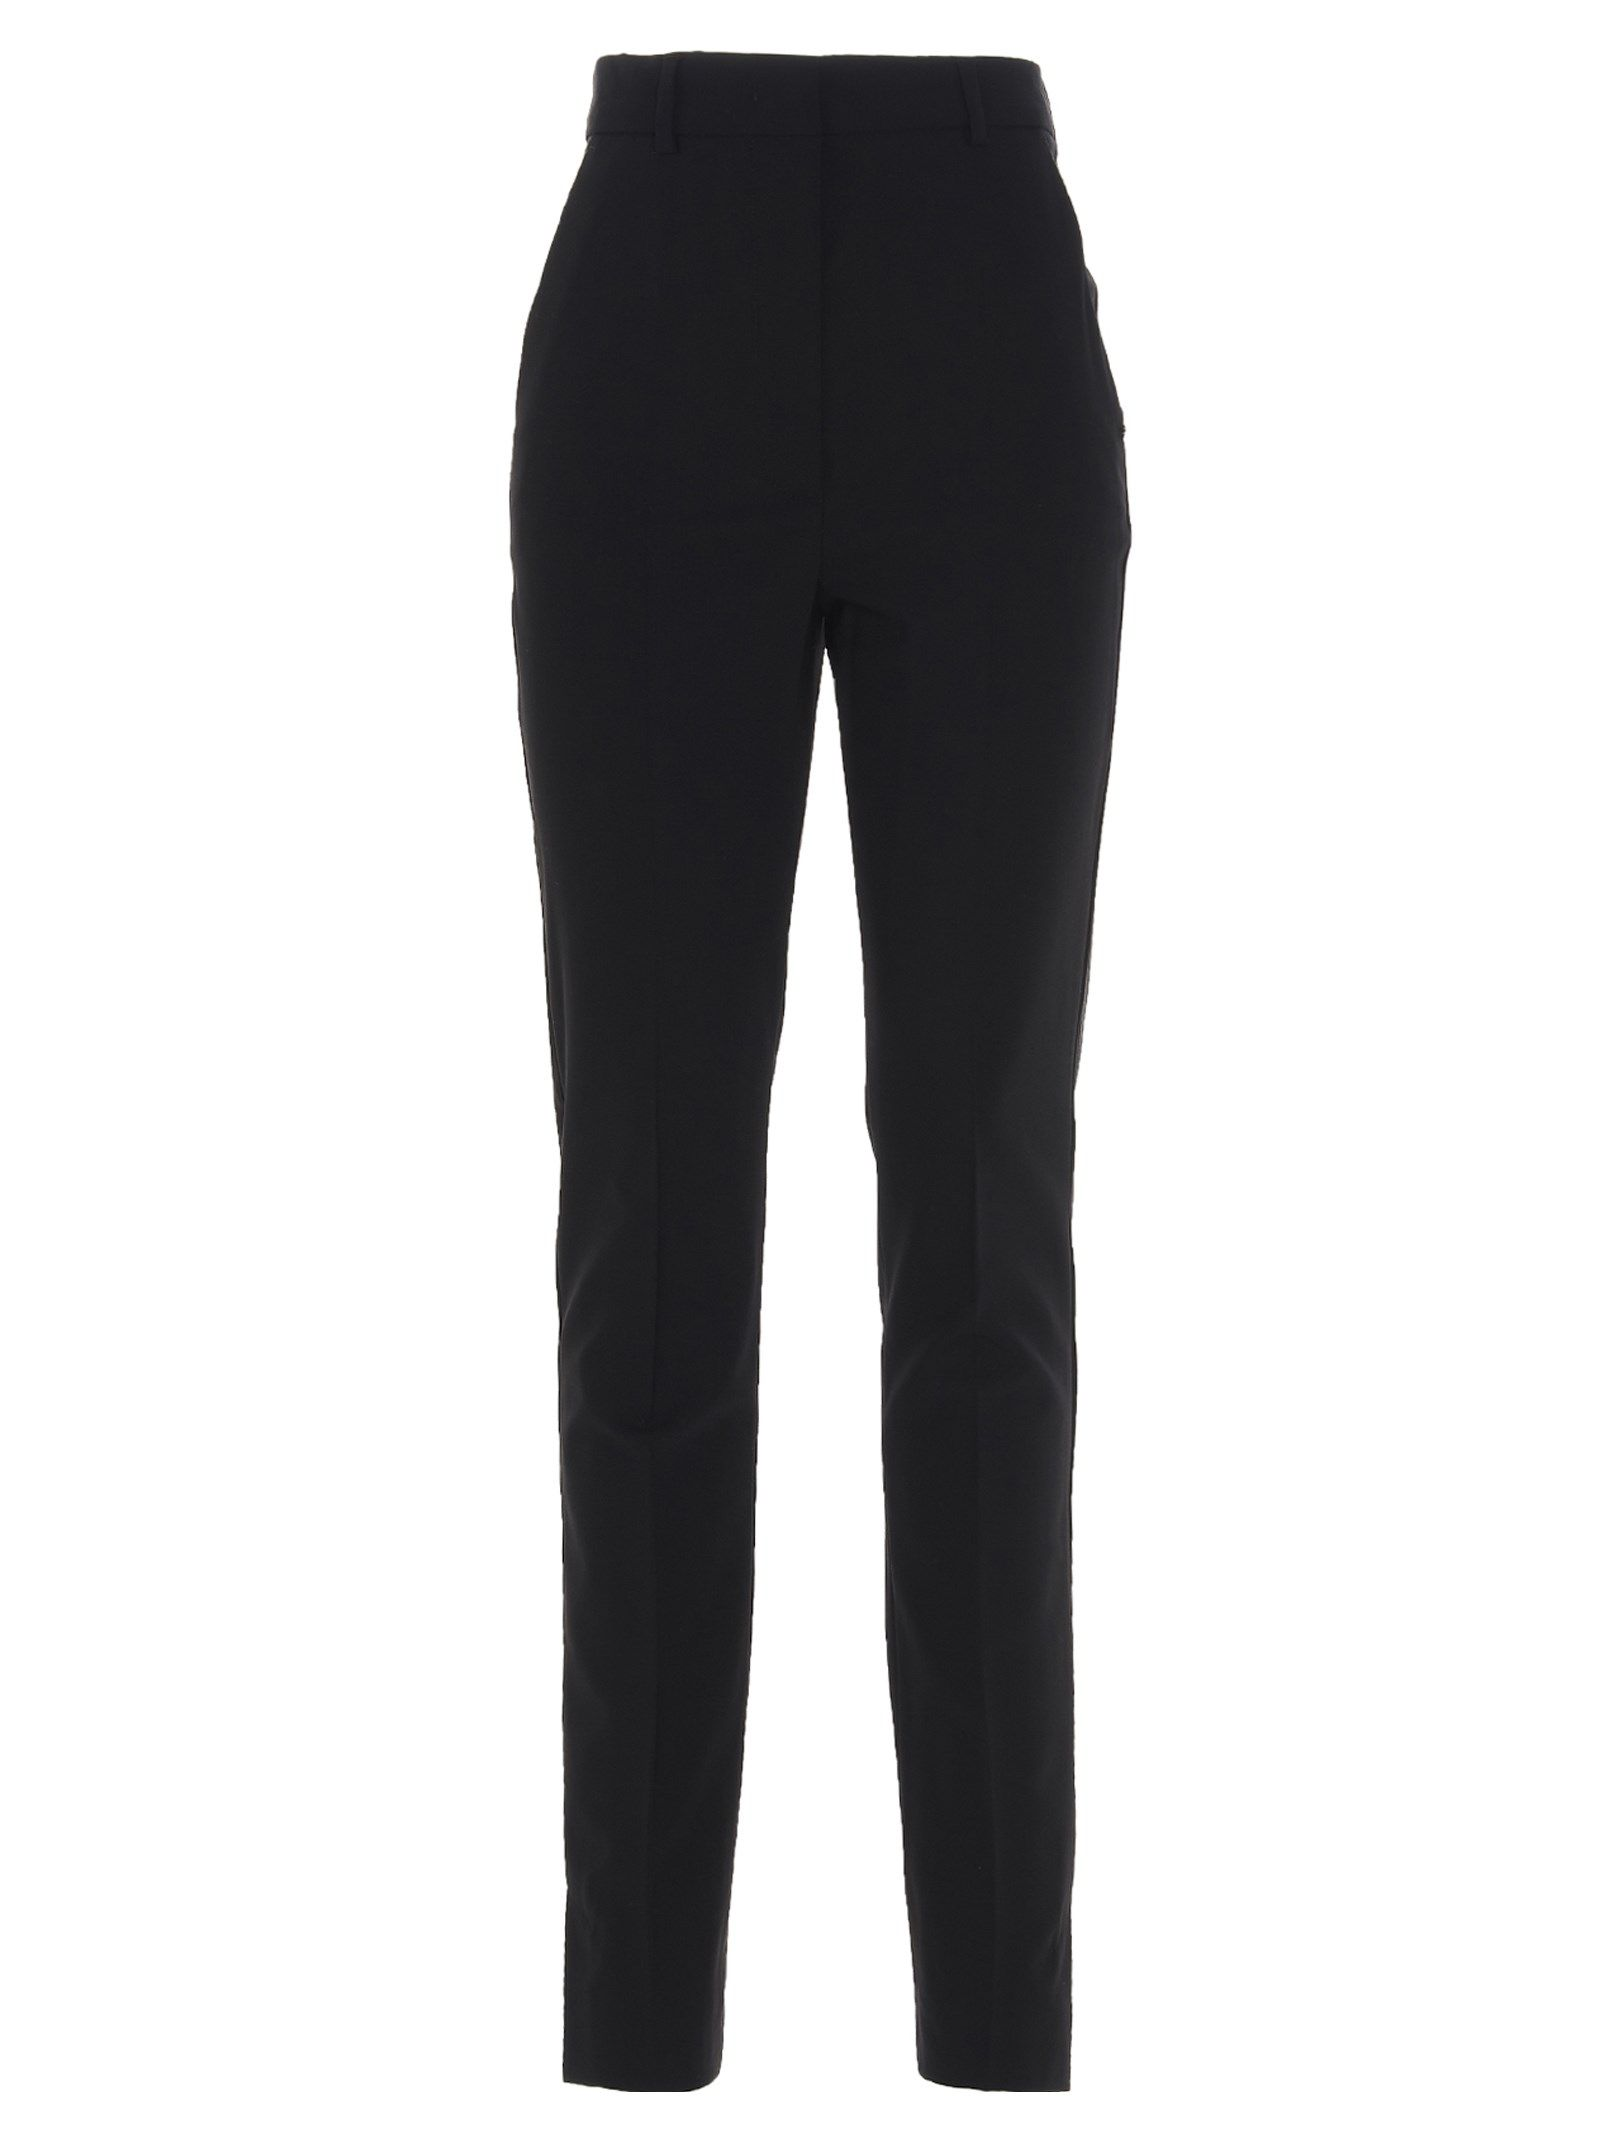 Sportmax SPORTMAX WOMEN'S 21310317600278002 BLACK OTHER MATERIALS PANTS